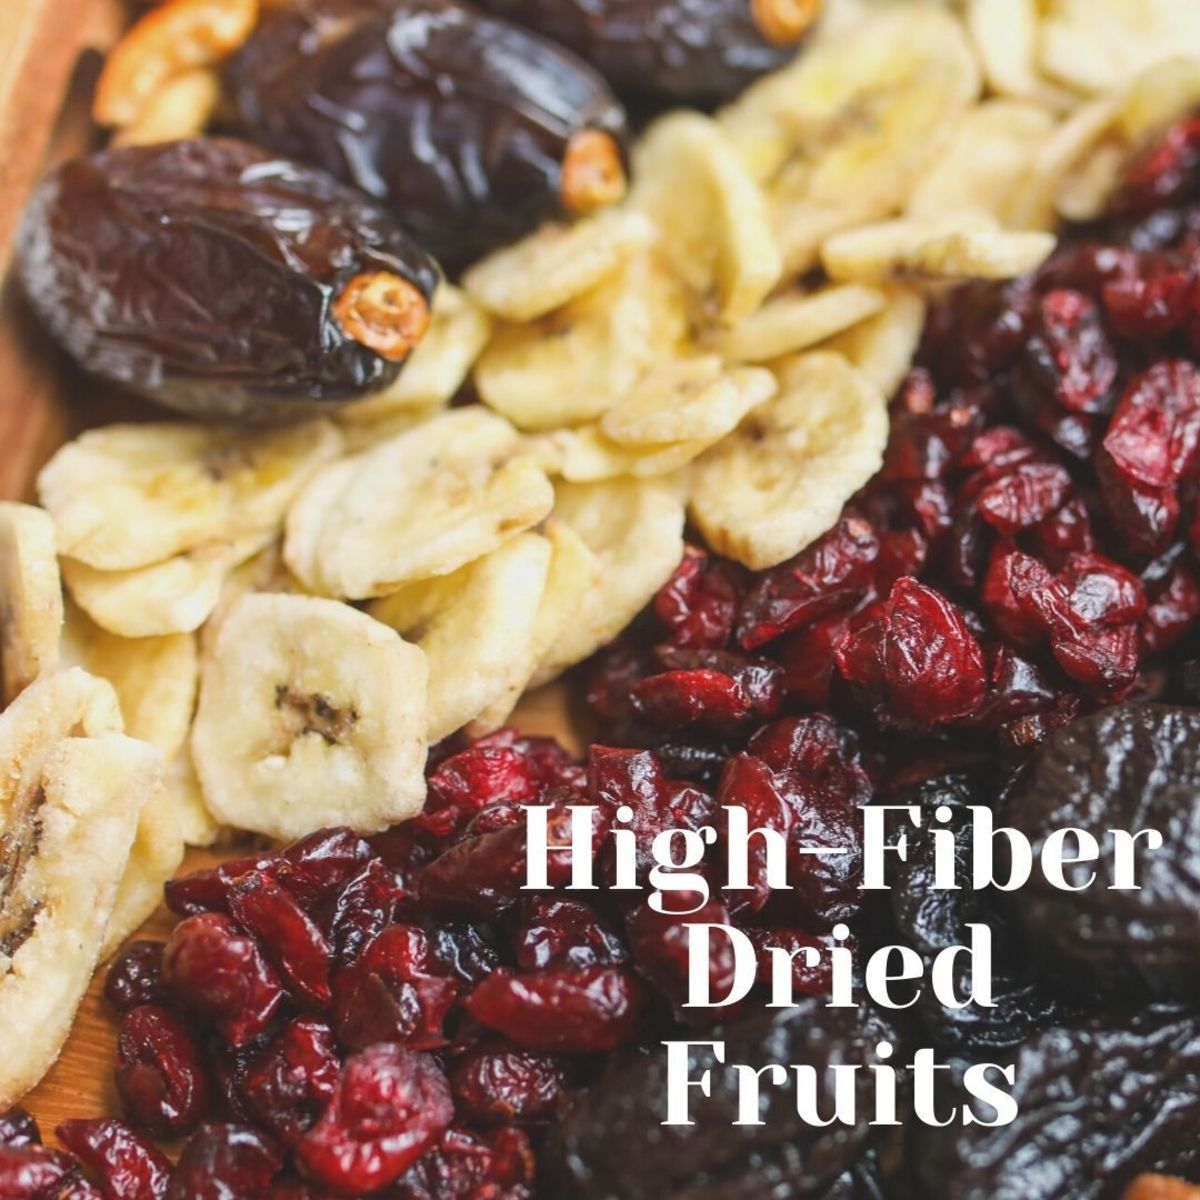 The drying process removes the water content from fruit, but it doesn't remove the nutrients—it just provides them in a more compact package.